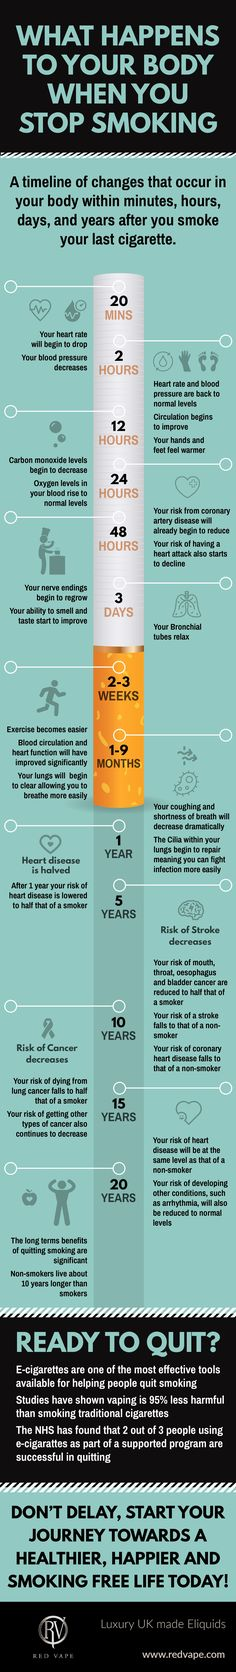 The Health Benefits Of Quitting Smoking